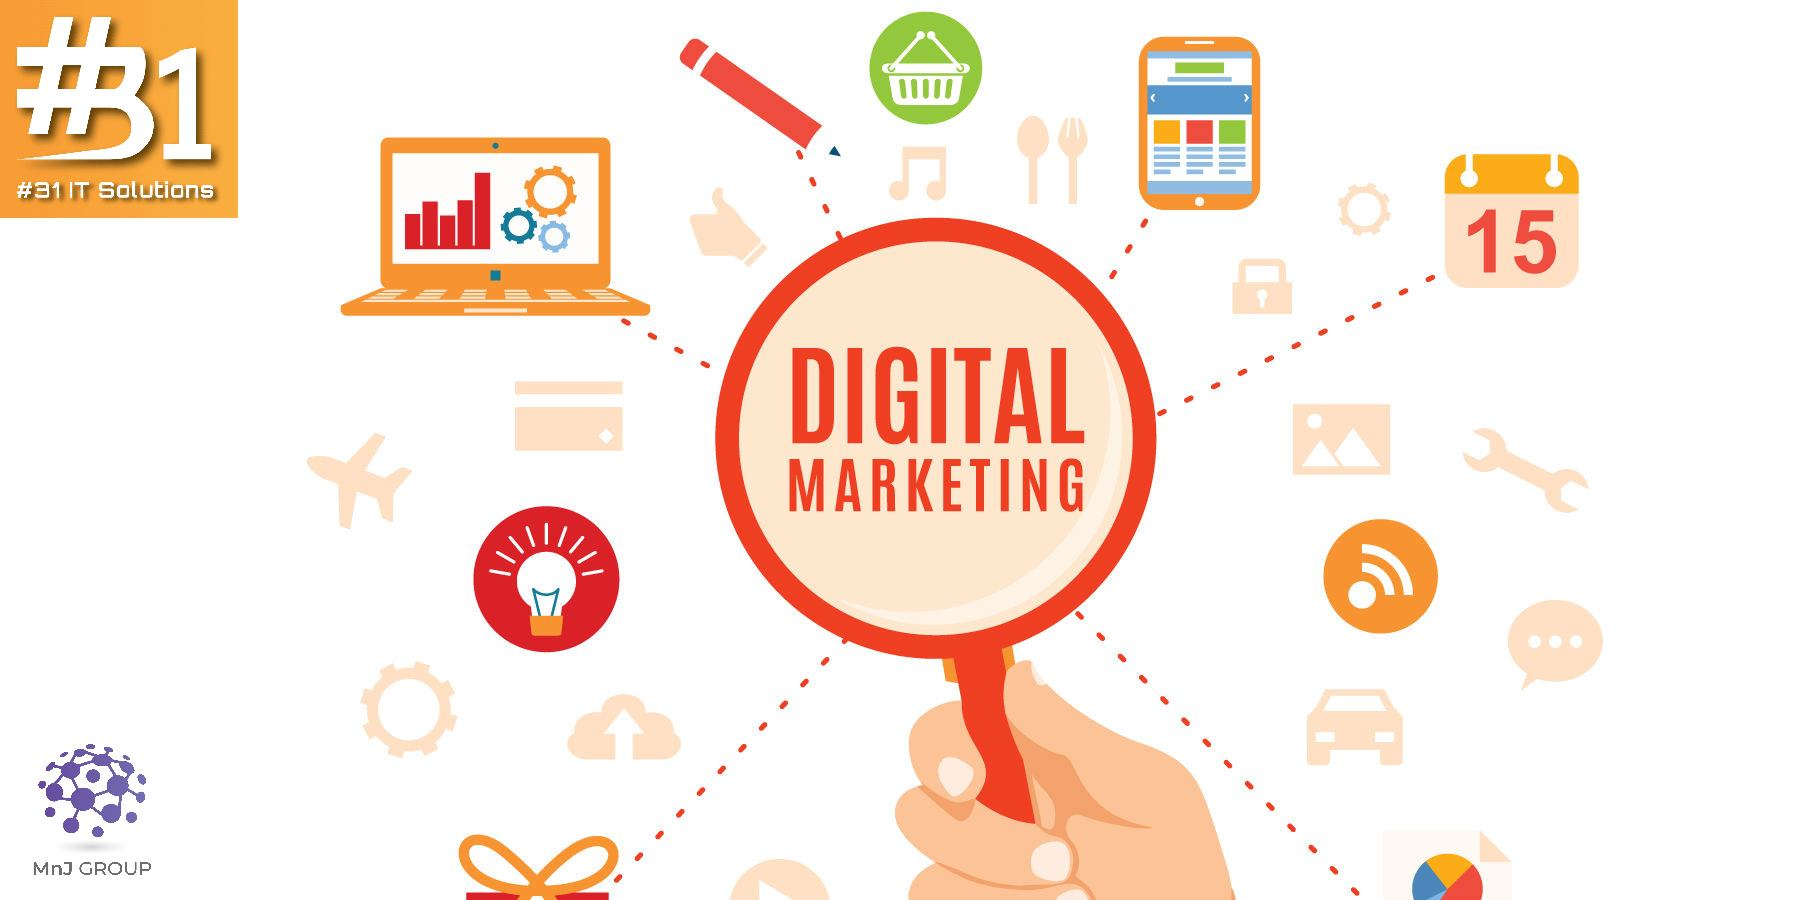 Digital Marketing - #31 IT Solutions, Thiruvala, Kerala